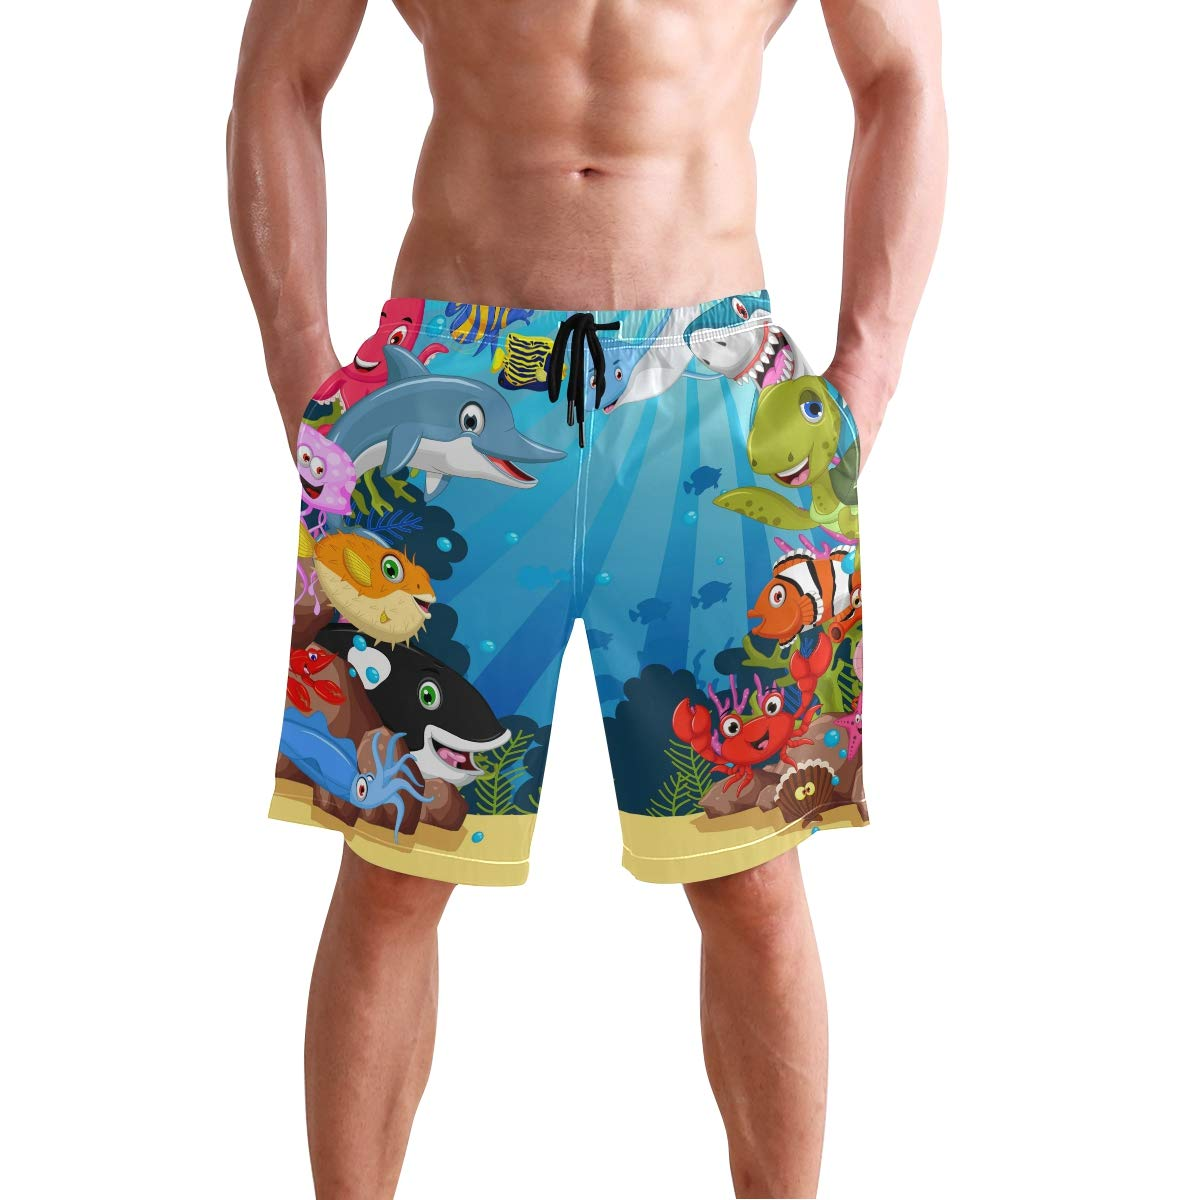 0dc0e59534 Men's Swim Trunks Quick Dry Sea Turtle Crabs Dolphines Bathing Suit Beach  Shorts | Amazon.com